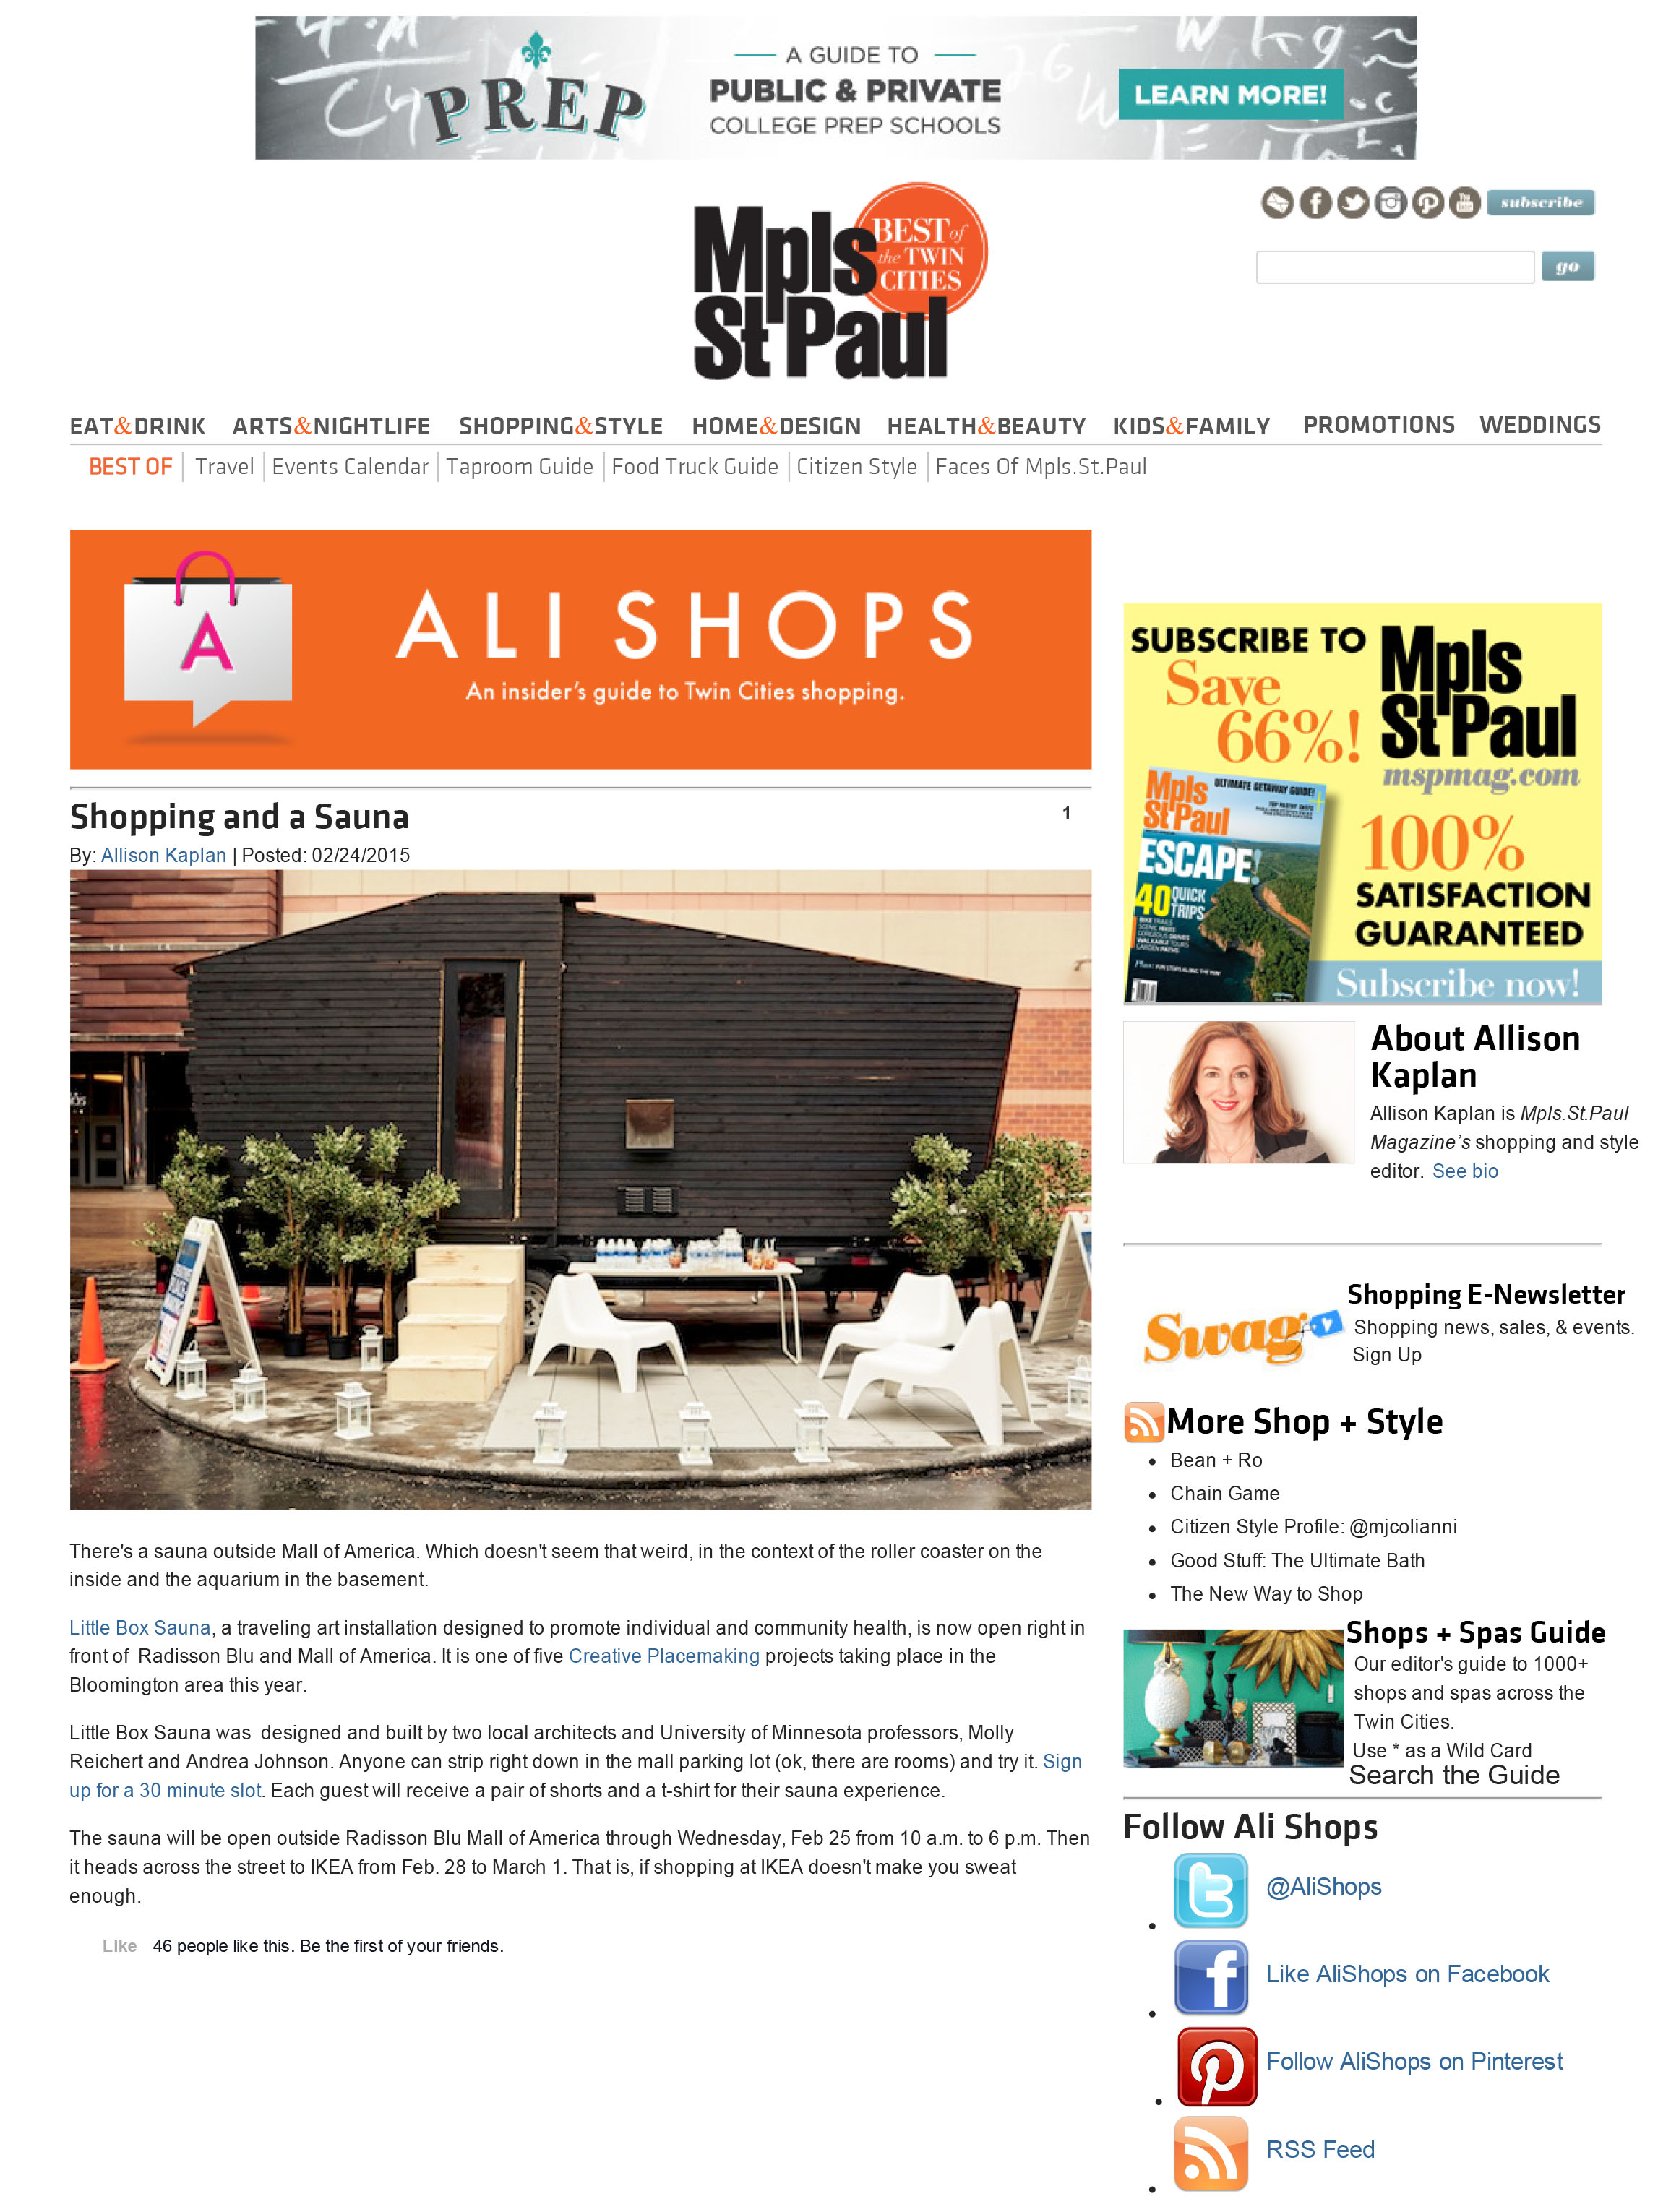 Shopping and a Sauna _ Ali Shops _ An Insider's Guide to Twin Cities Shopping by Allison Kaplan _ Mpls